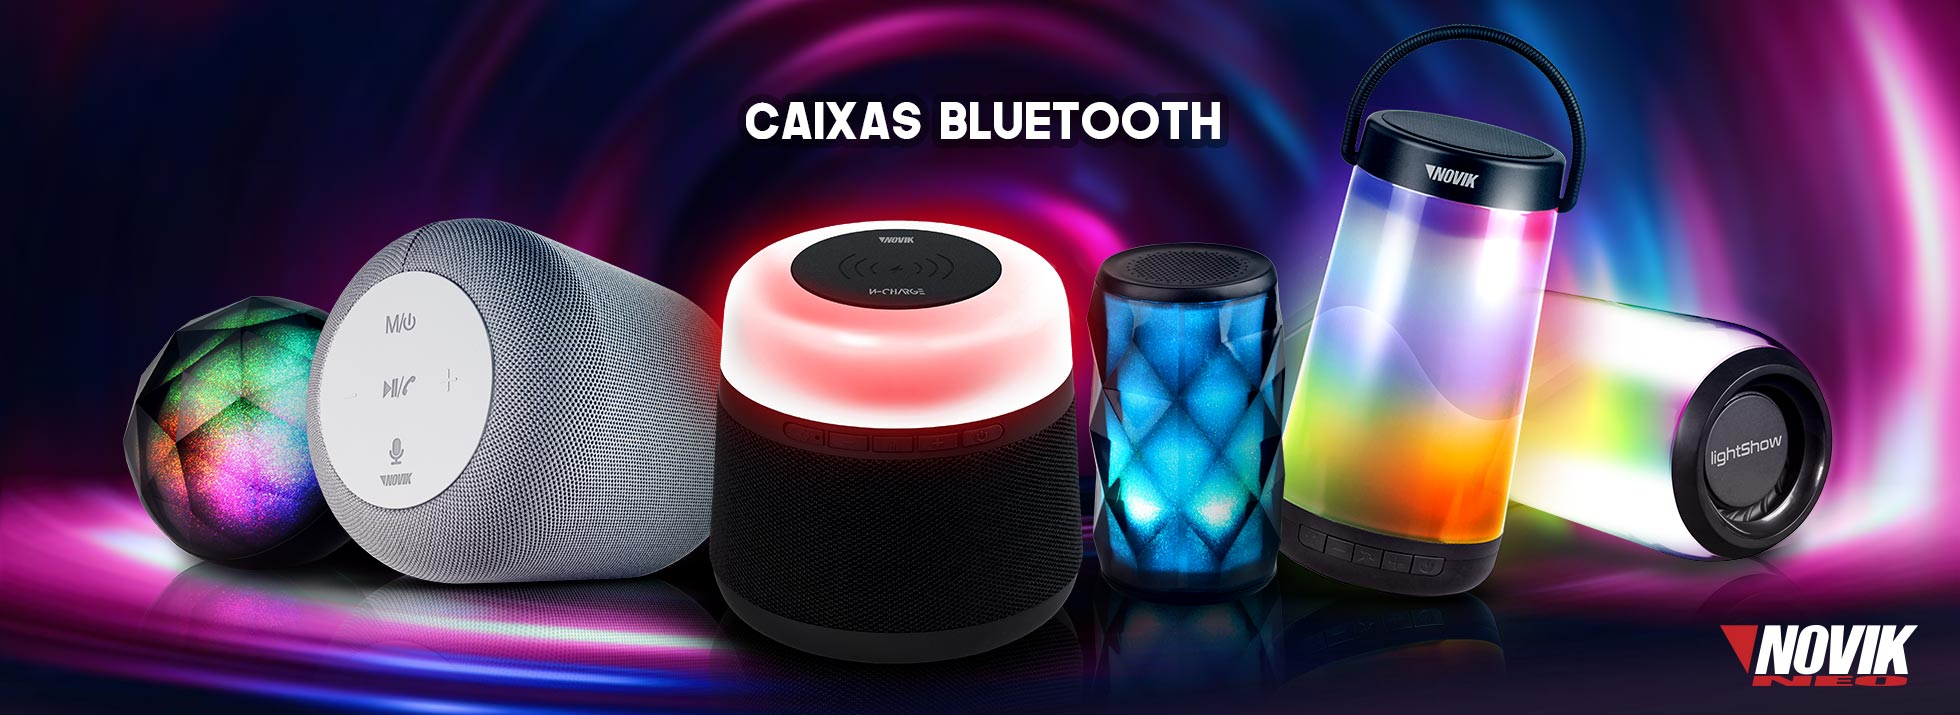 Caixas Bluetooth